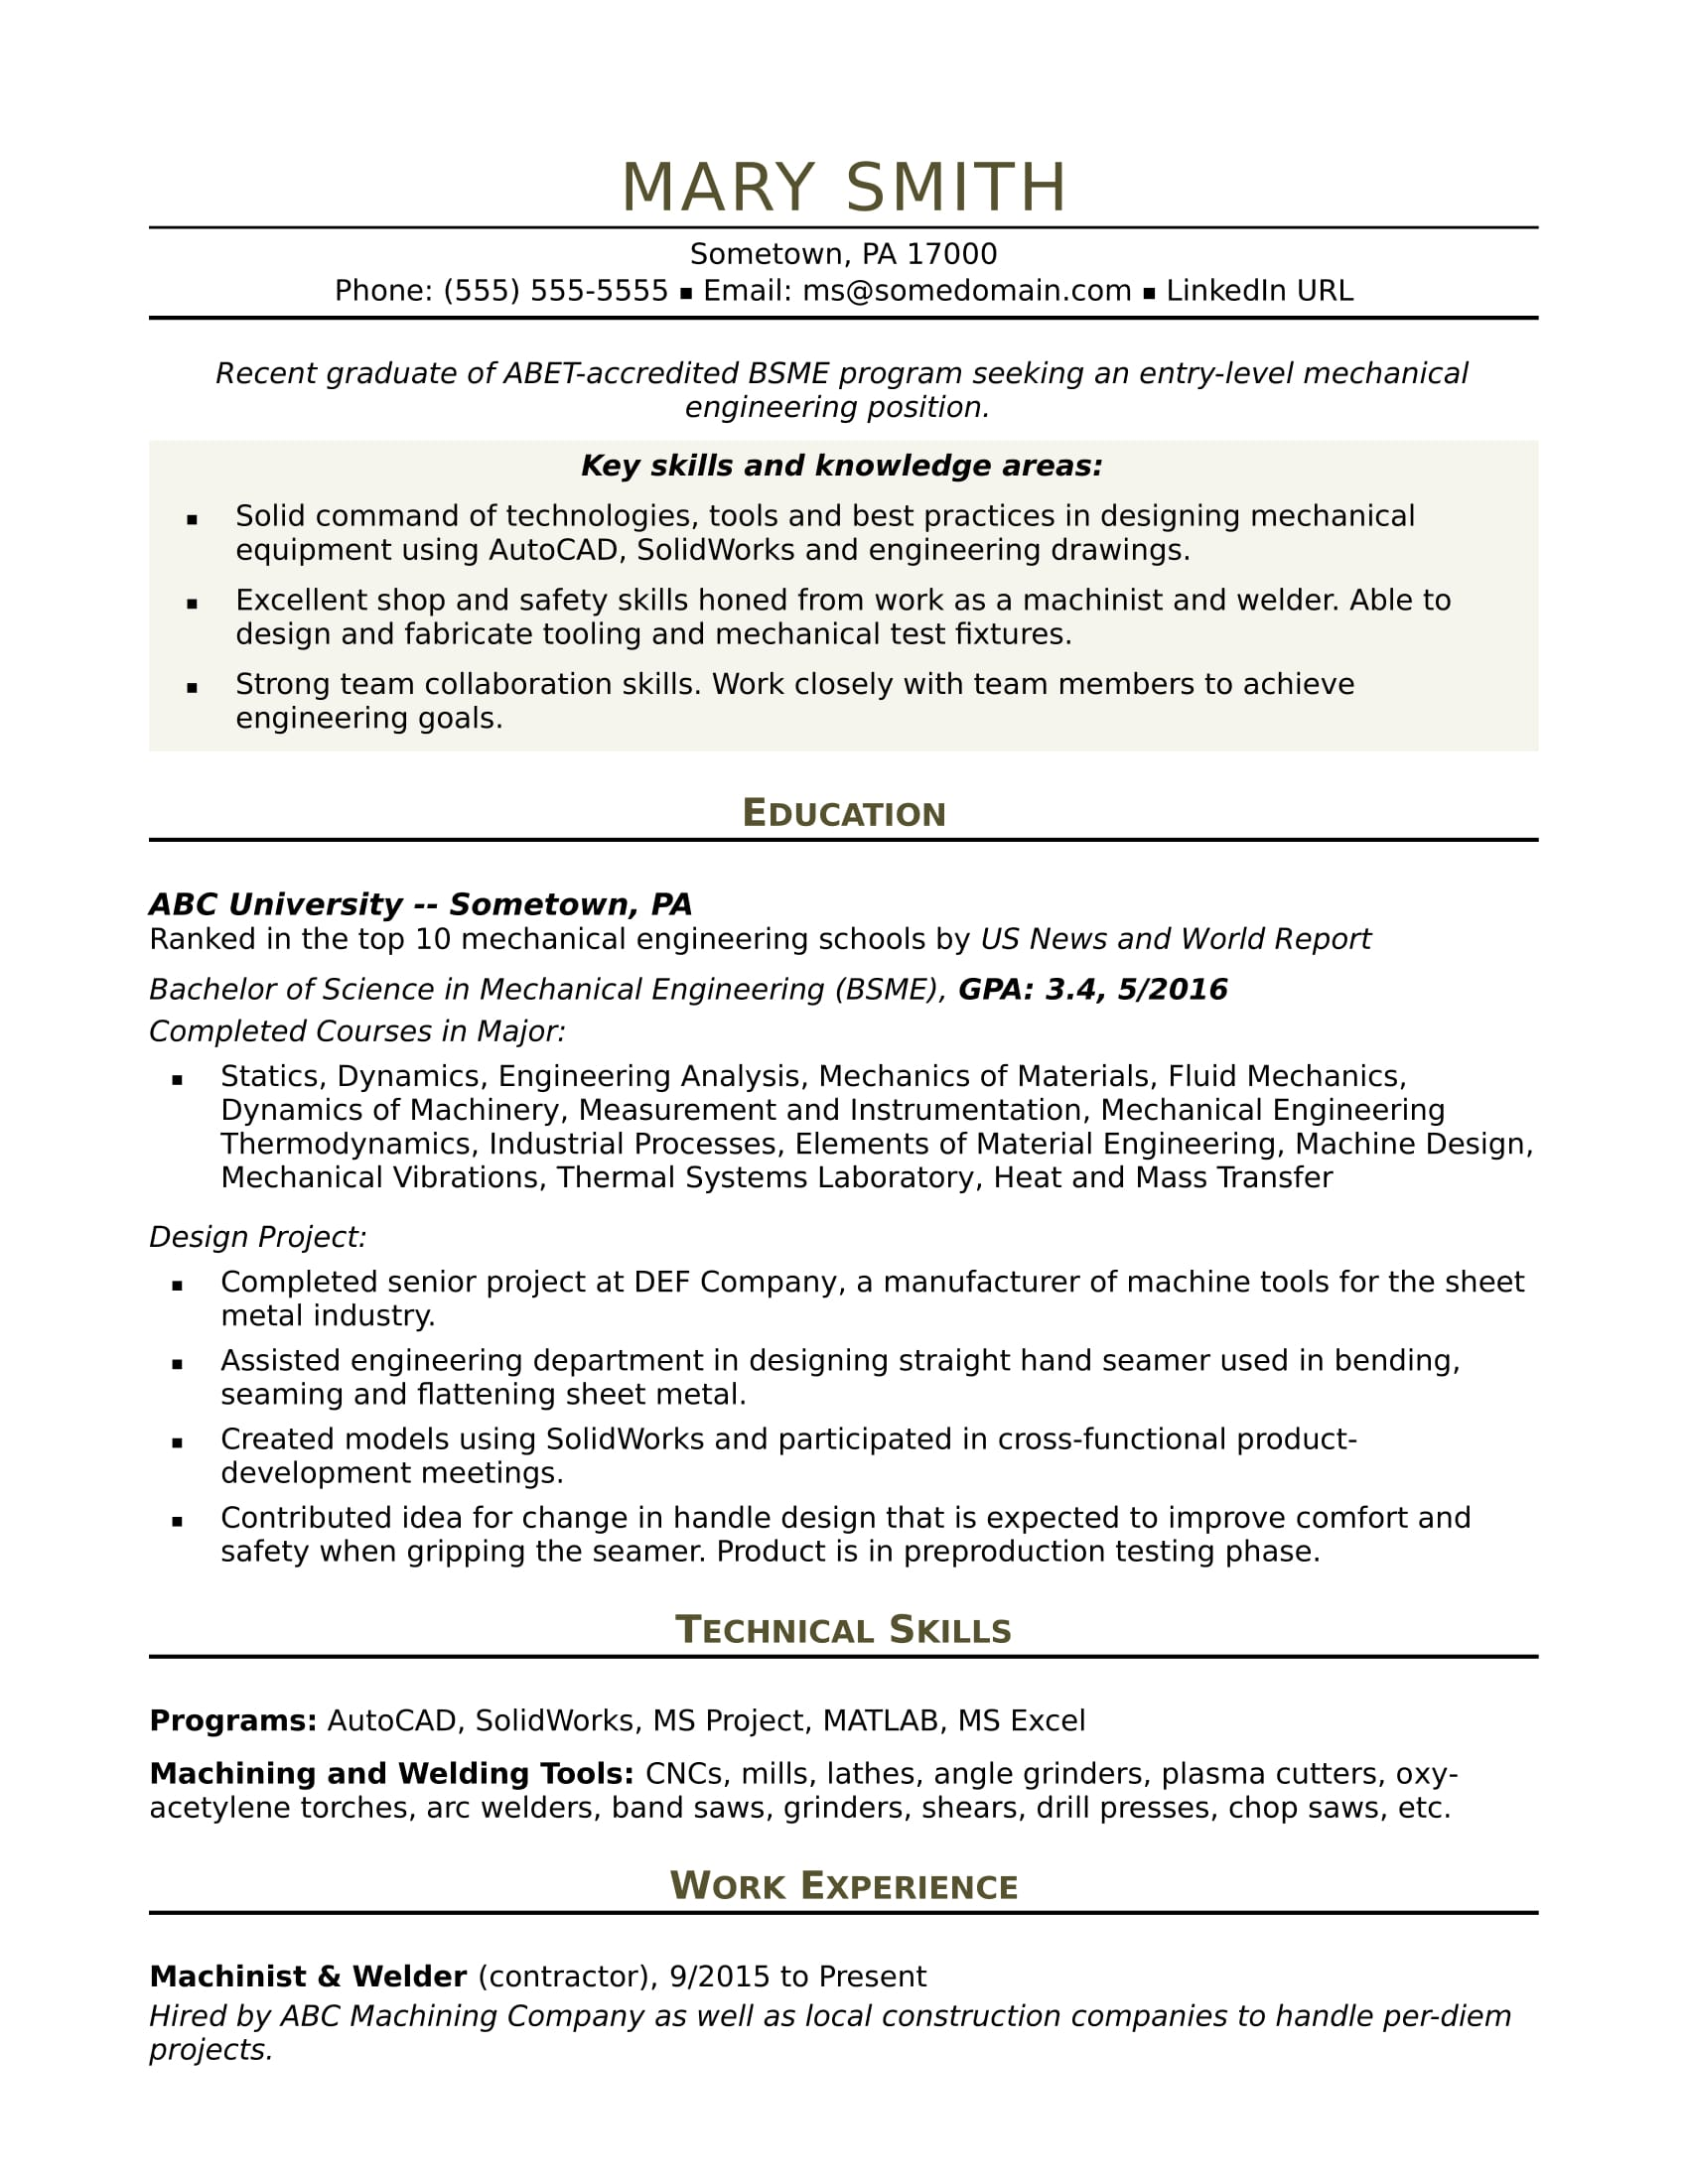 Sample Resume For An Entry Level Mechanical Engineer  Resume Examples Engineering